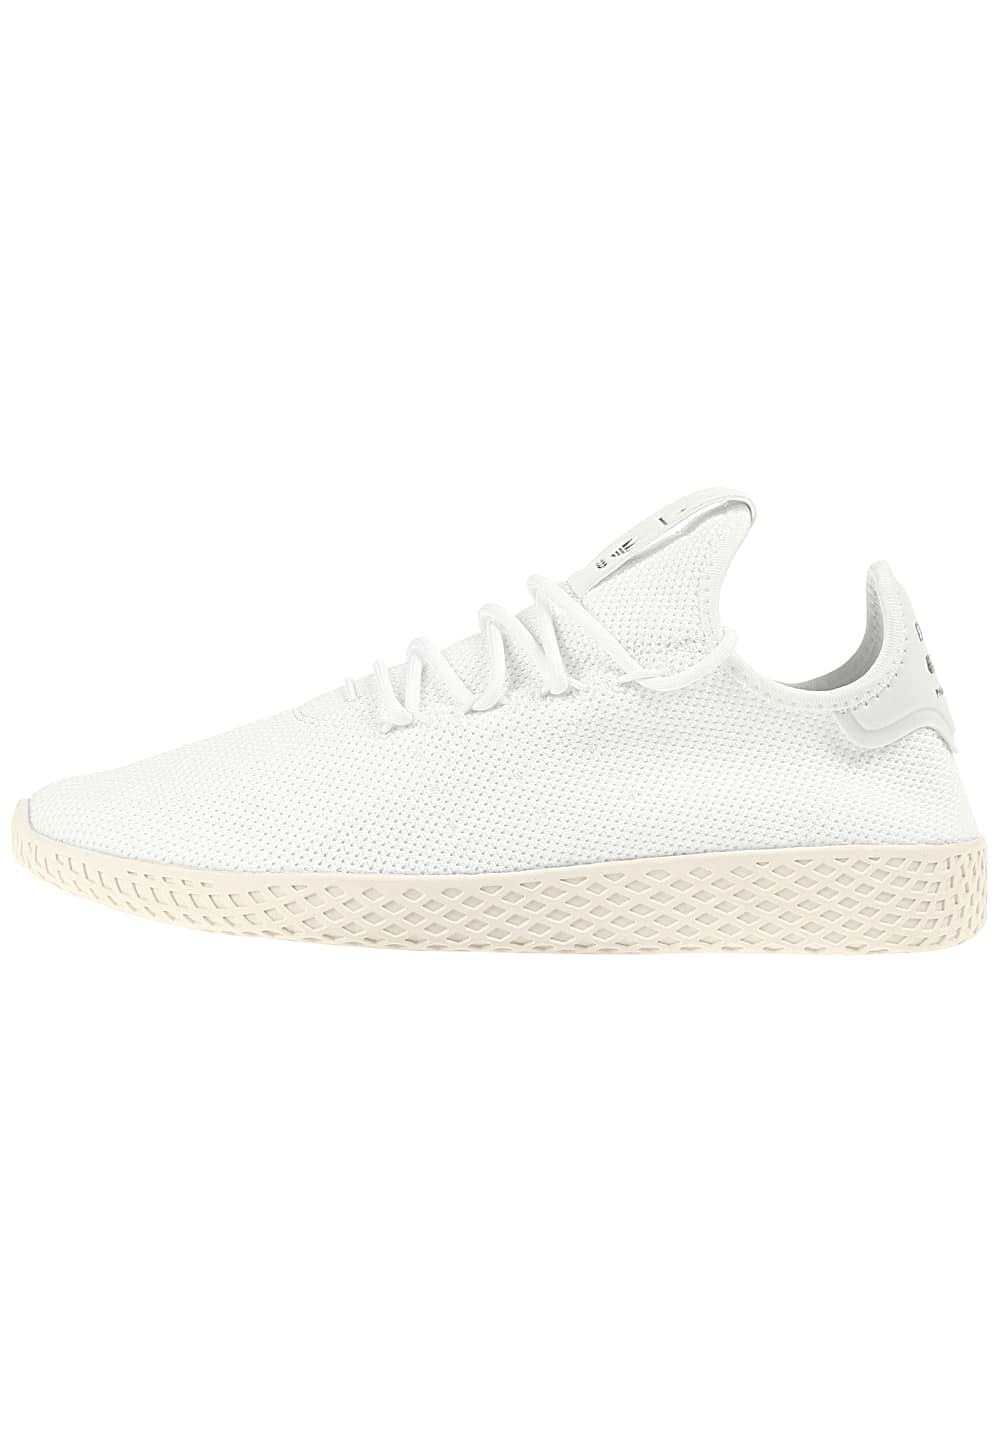 adidas Originals Pharrell Williams Tennis HU Sneaker für Herren Weiß